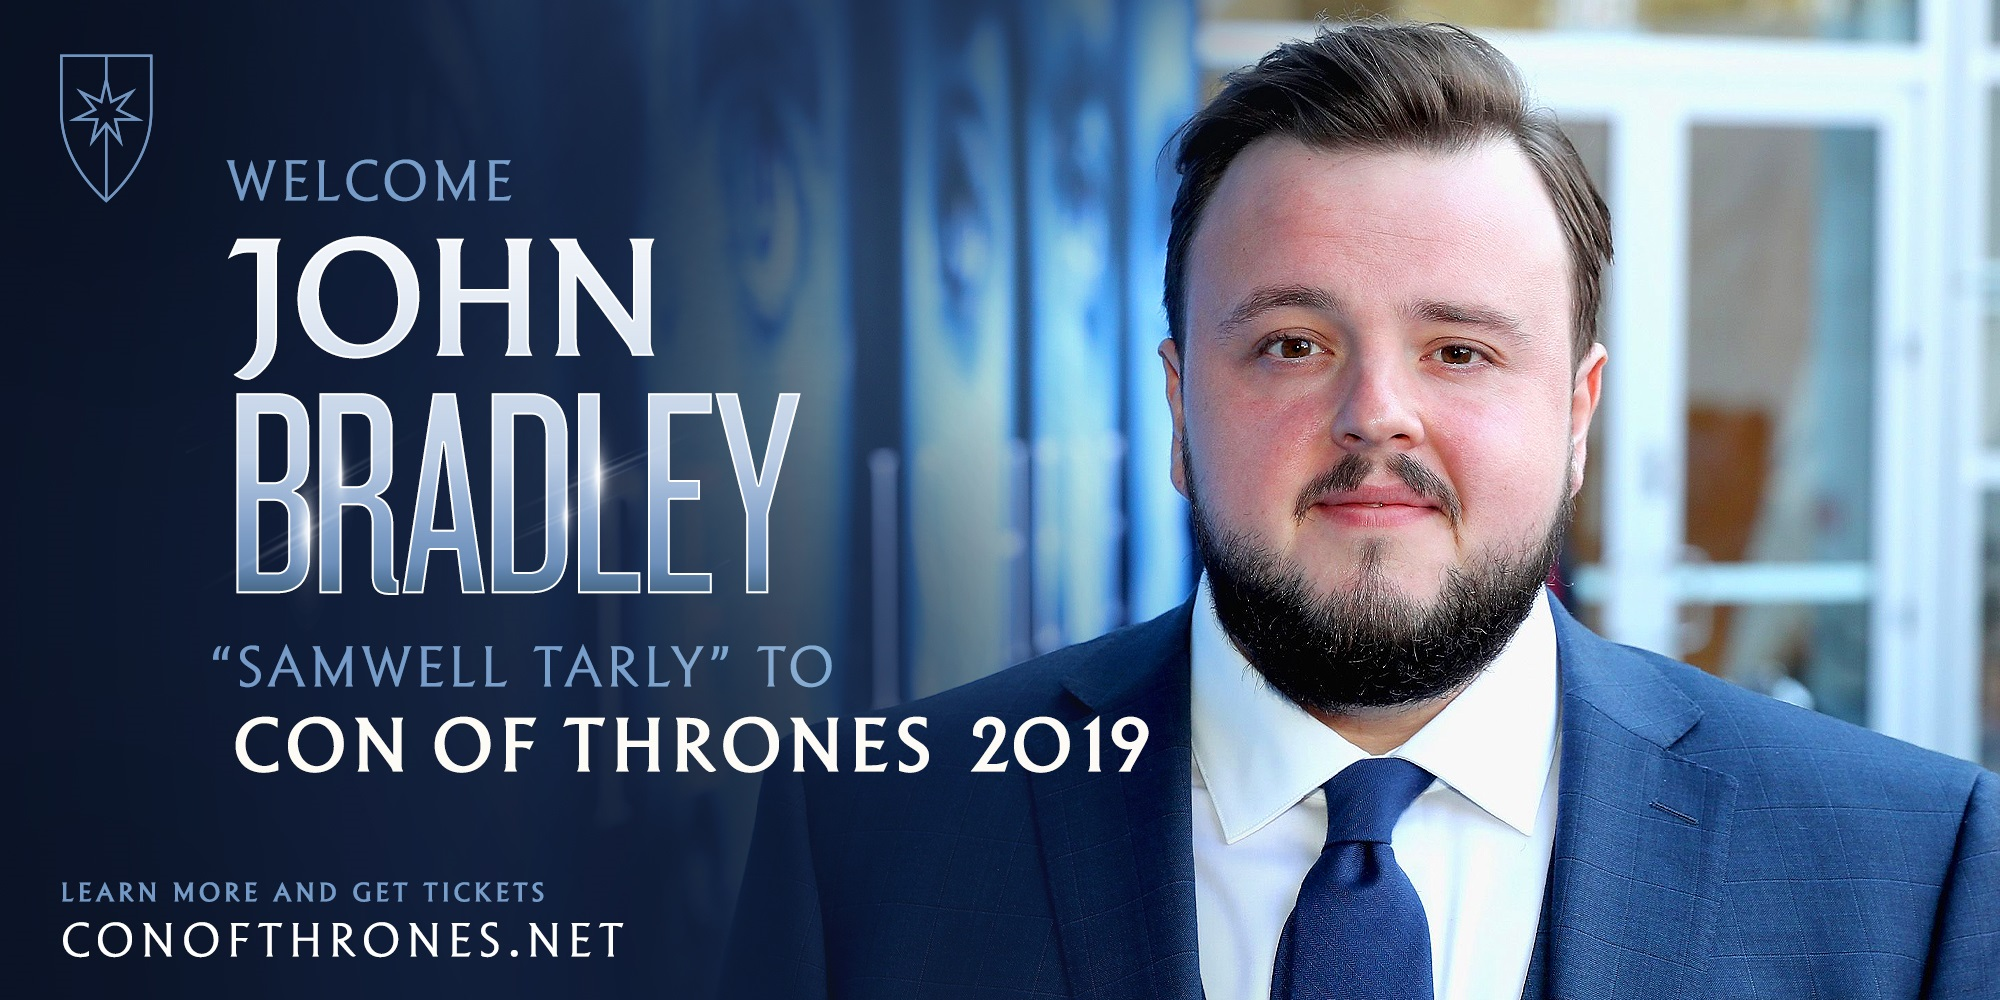 John Bradley Con of Thrones Announcement